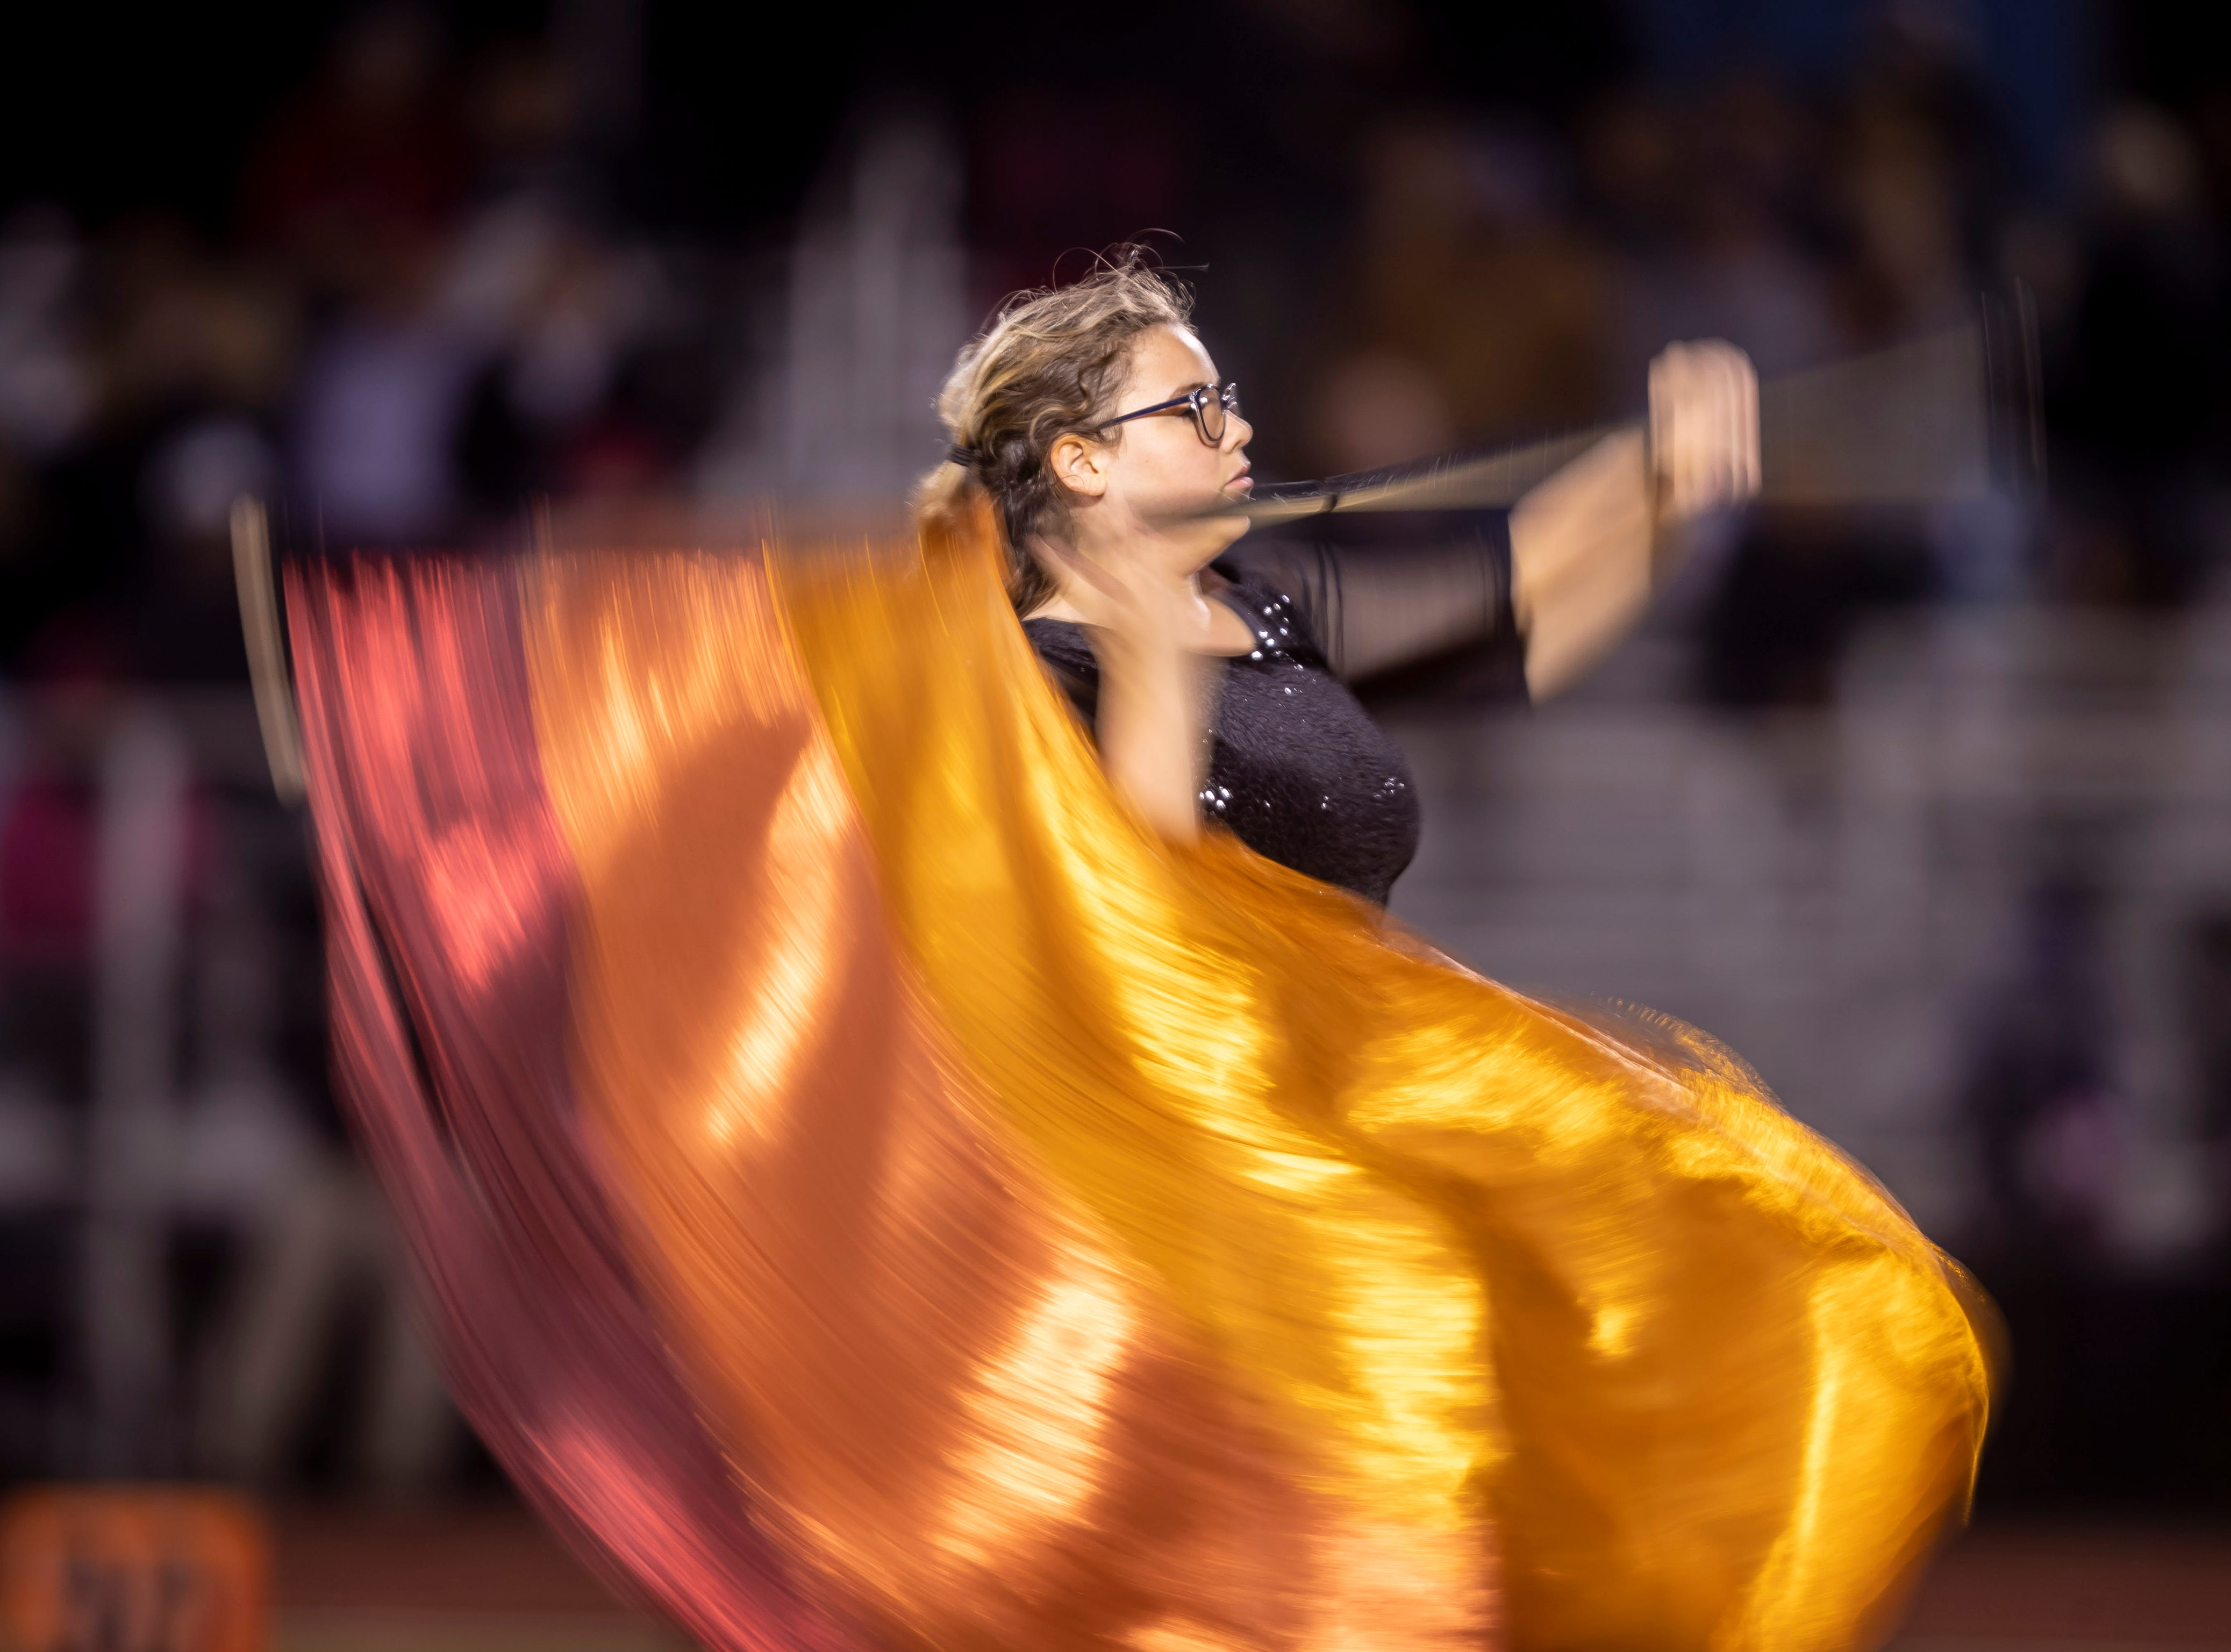 The Centennial Coyotes marching band performs at halftime during the game against the Higley Knights in the 5A semi-finals at Willow Canyon High School on Friday, November 16, 2018 in Surprise, Arizona. #azhsfb